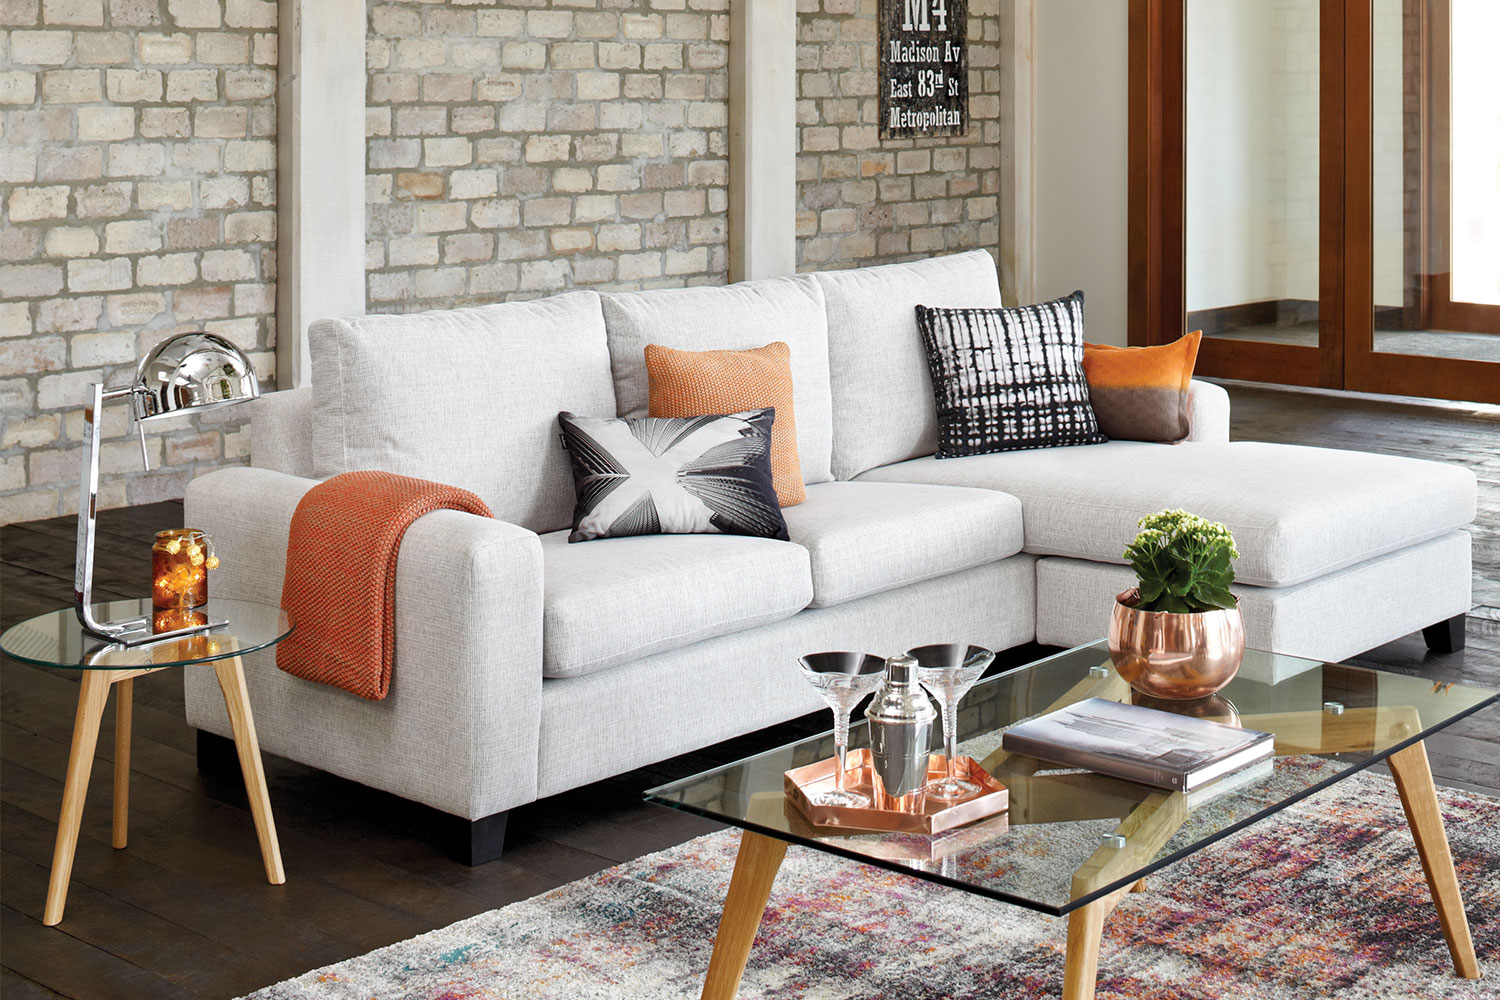 Sofa Lounger Pictures To Pin On Pinterest - Central 3 5 seater fabric sofa with chaise by evan john philp new house pinterest fabric sofa and house